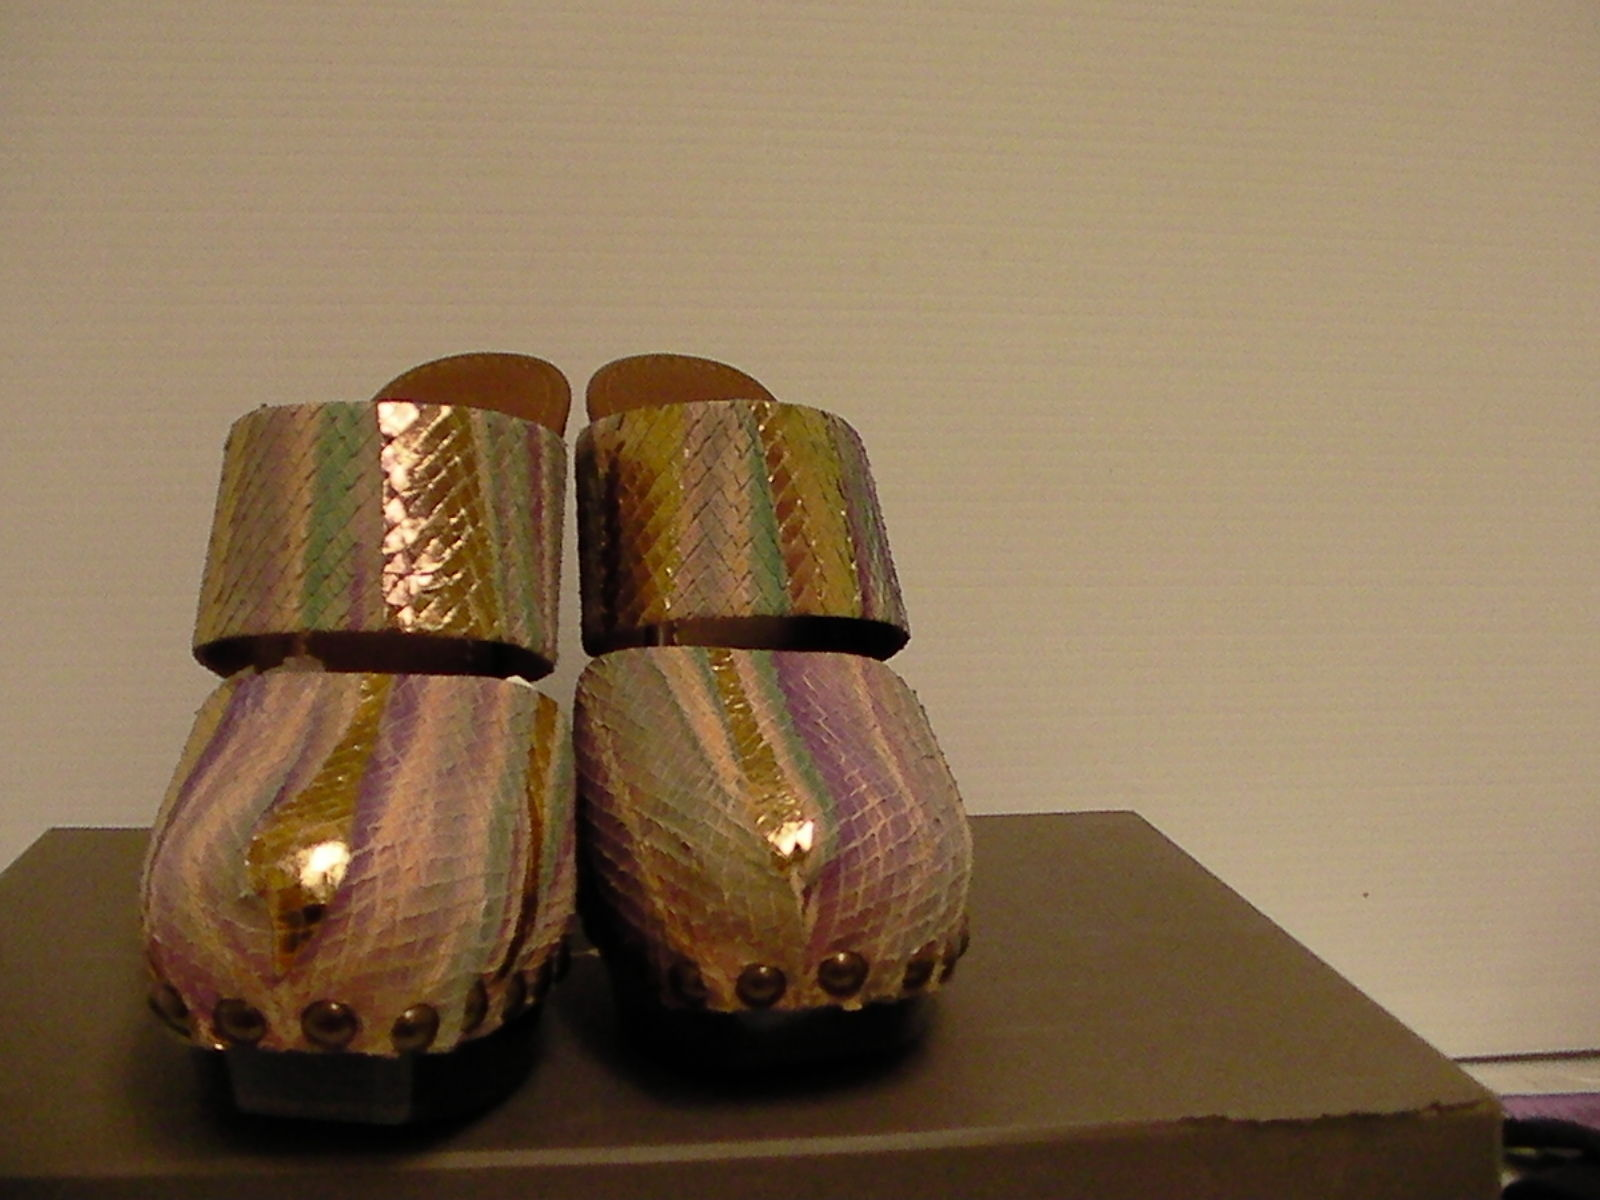 Ugg collection slip on Amadora Disco size 7.5 B new with box